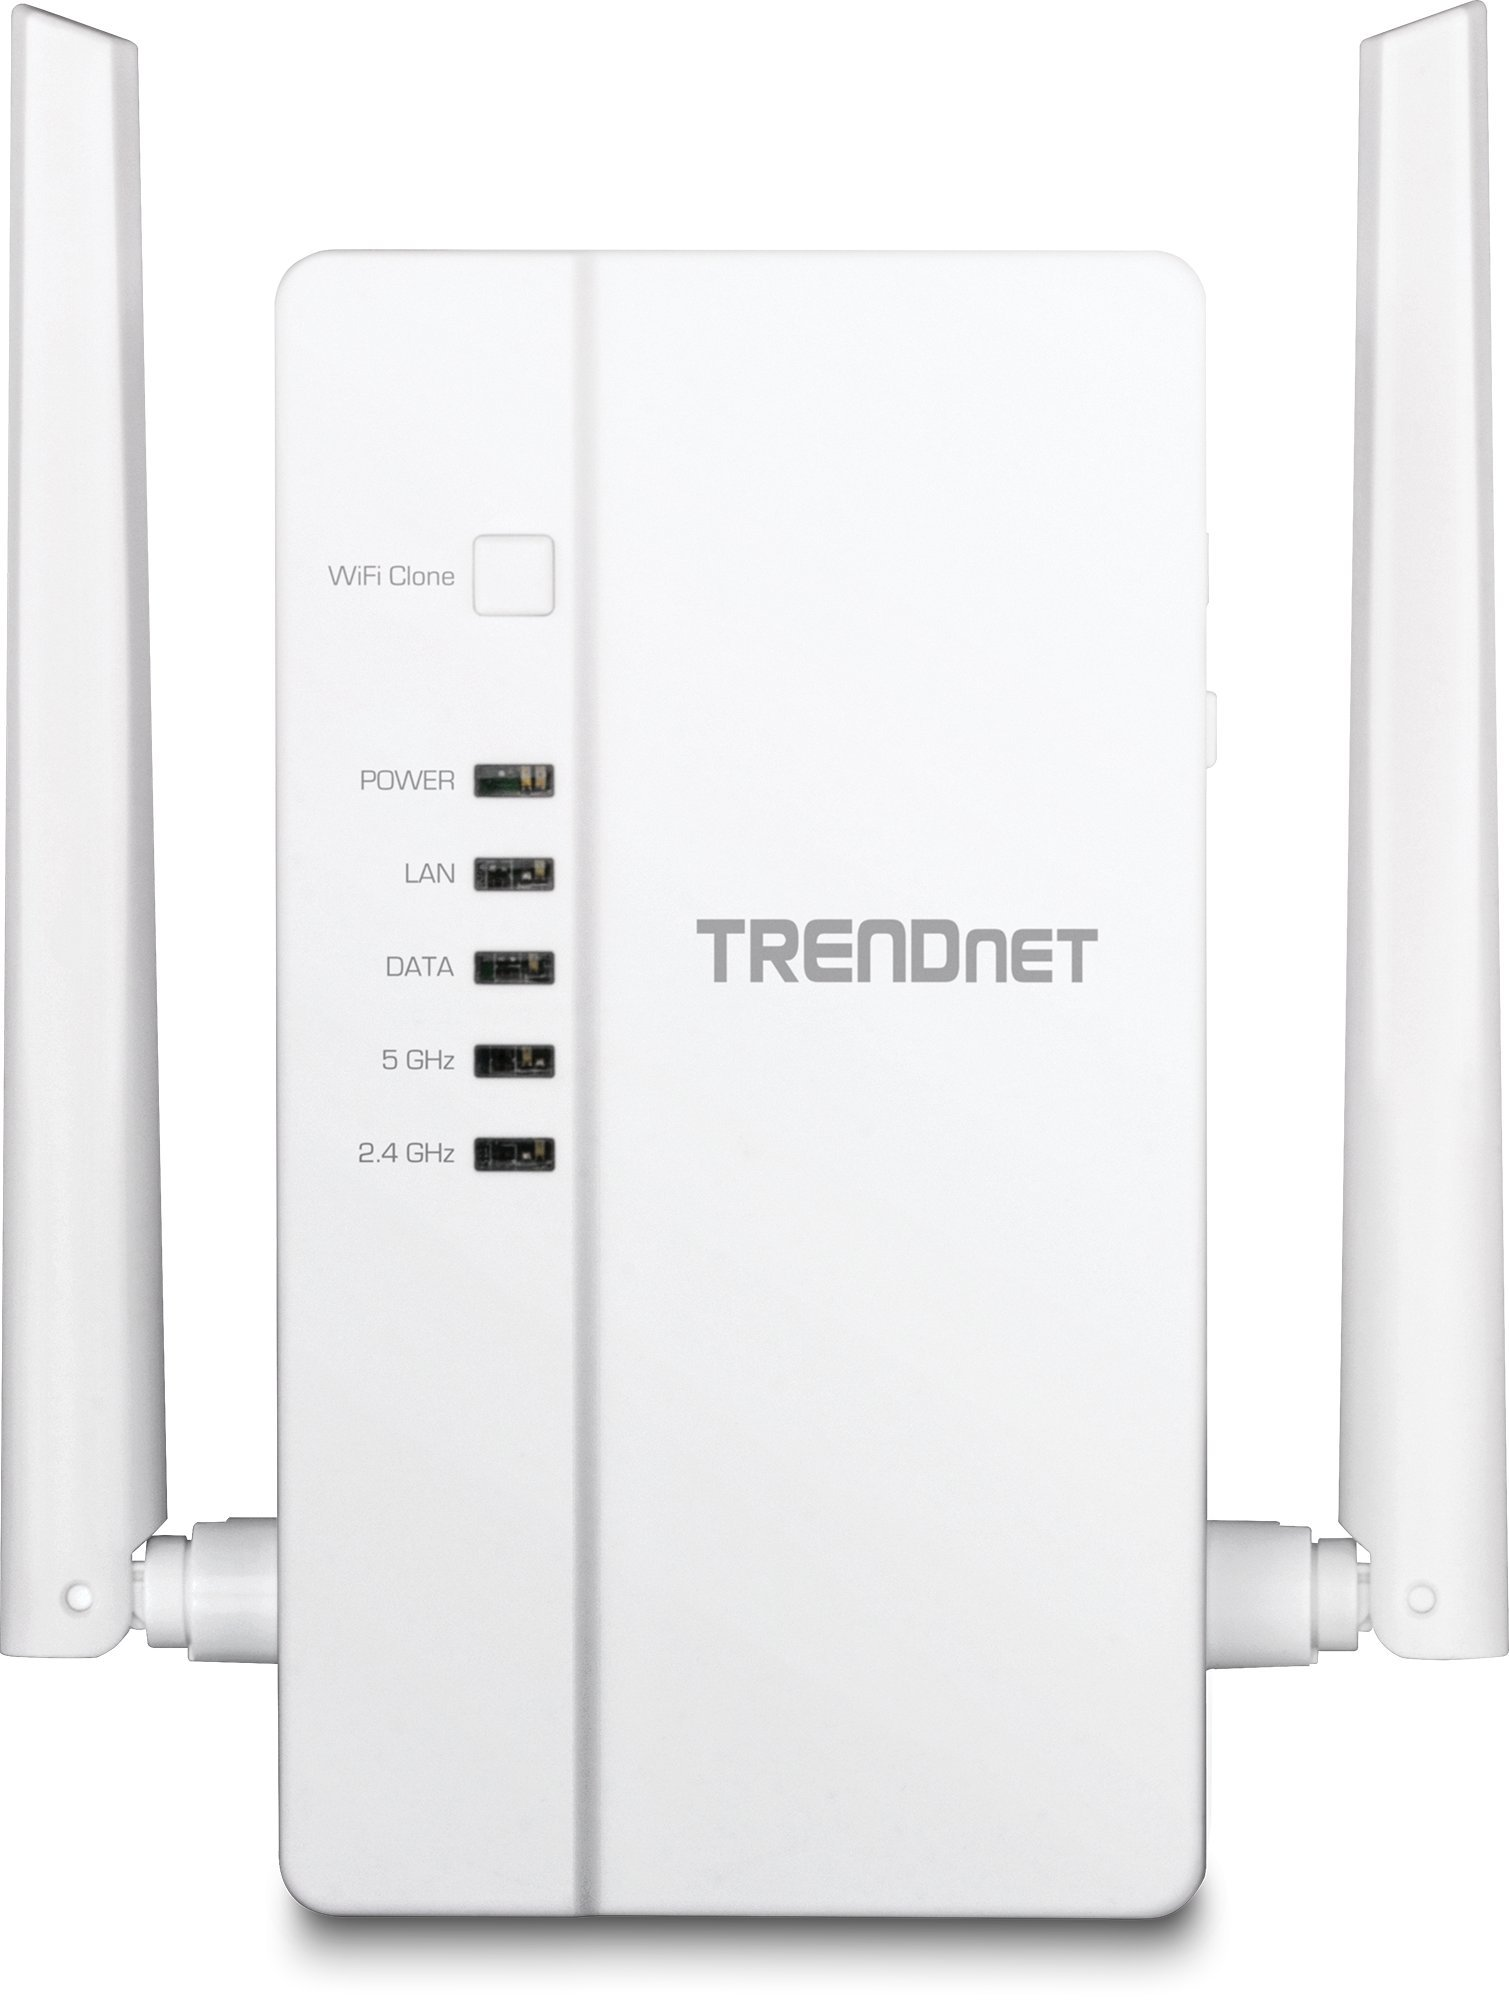 TRENDnet Wi-Fi Everywhere Powerline 1200 AV2 Dual-Band AC1200 Wireless Access Point, 3 x Gigabit Ports, TPL-430AP